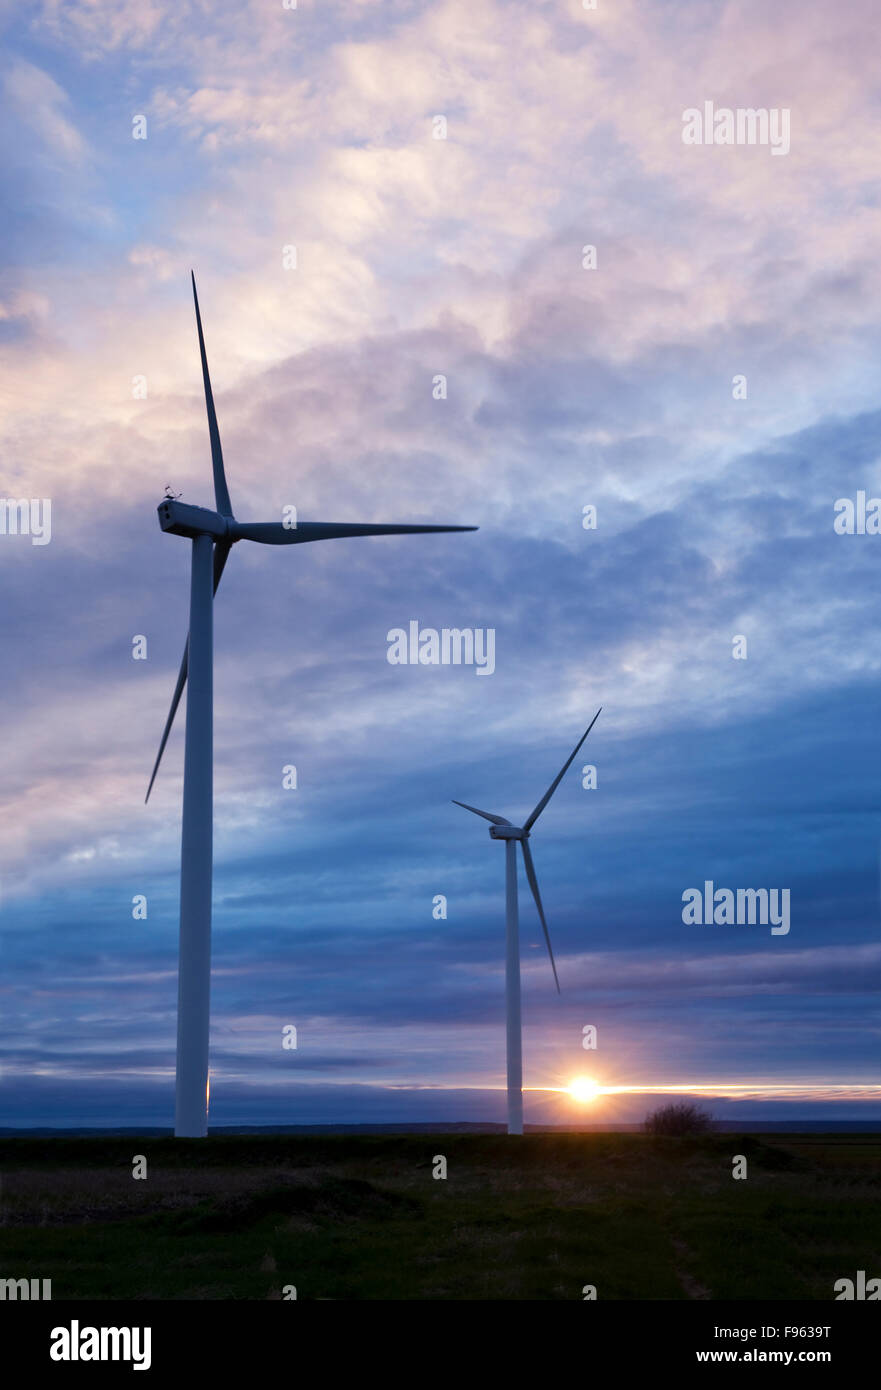 Two wind turbines silhouetted against the setting sun. The turbines are among 15 at the Amherst Wind Farm located Stock Photo